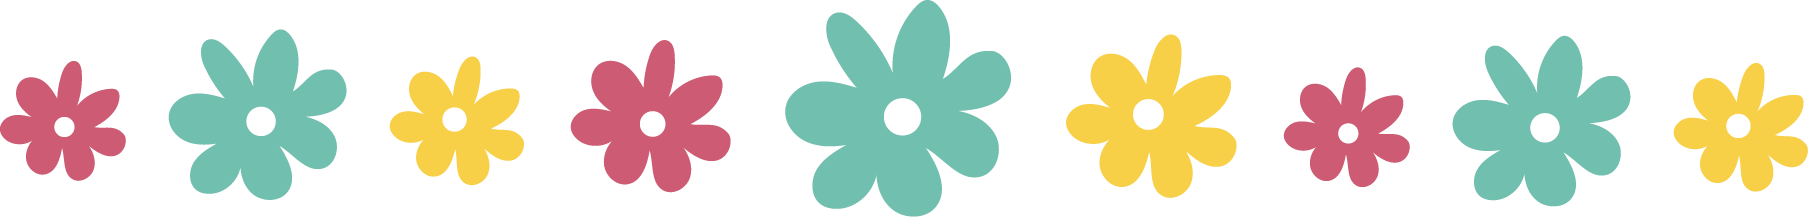 flowers3.png